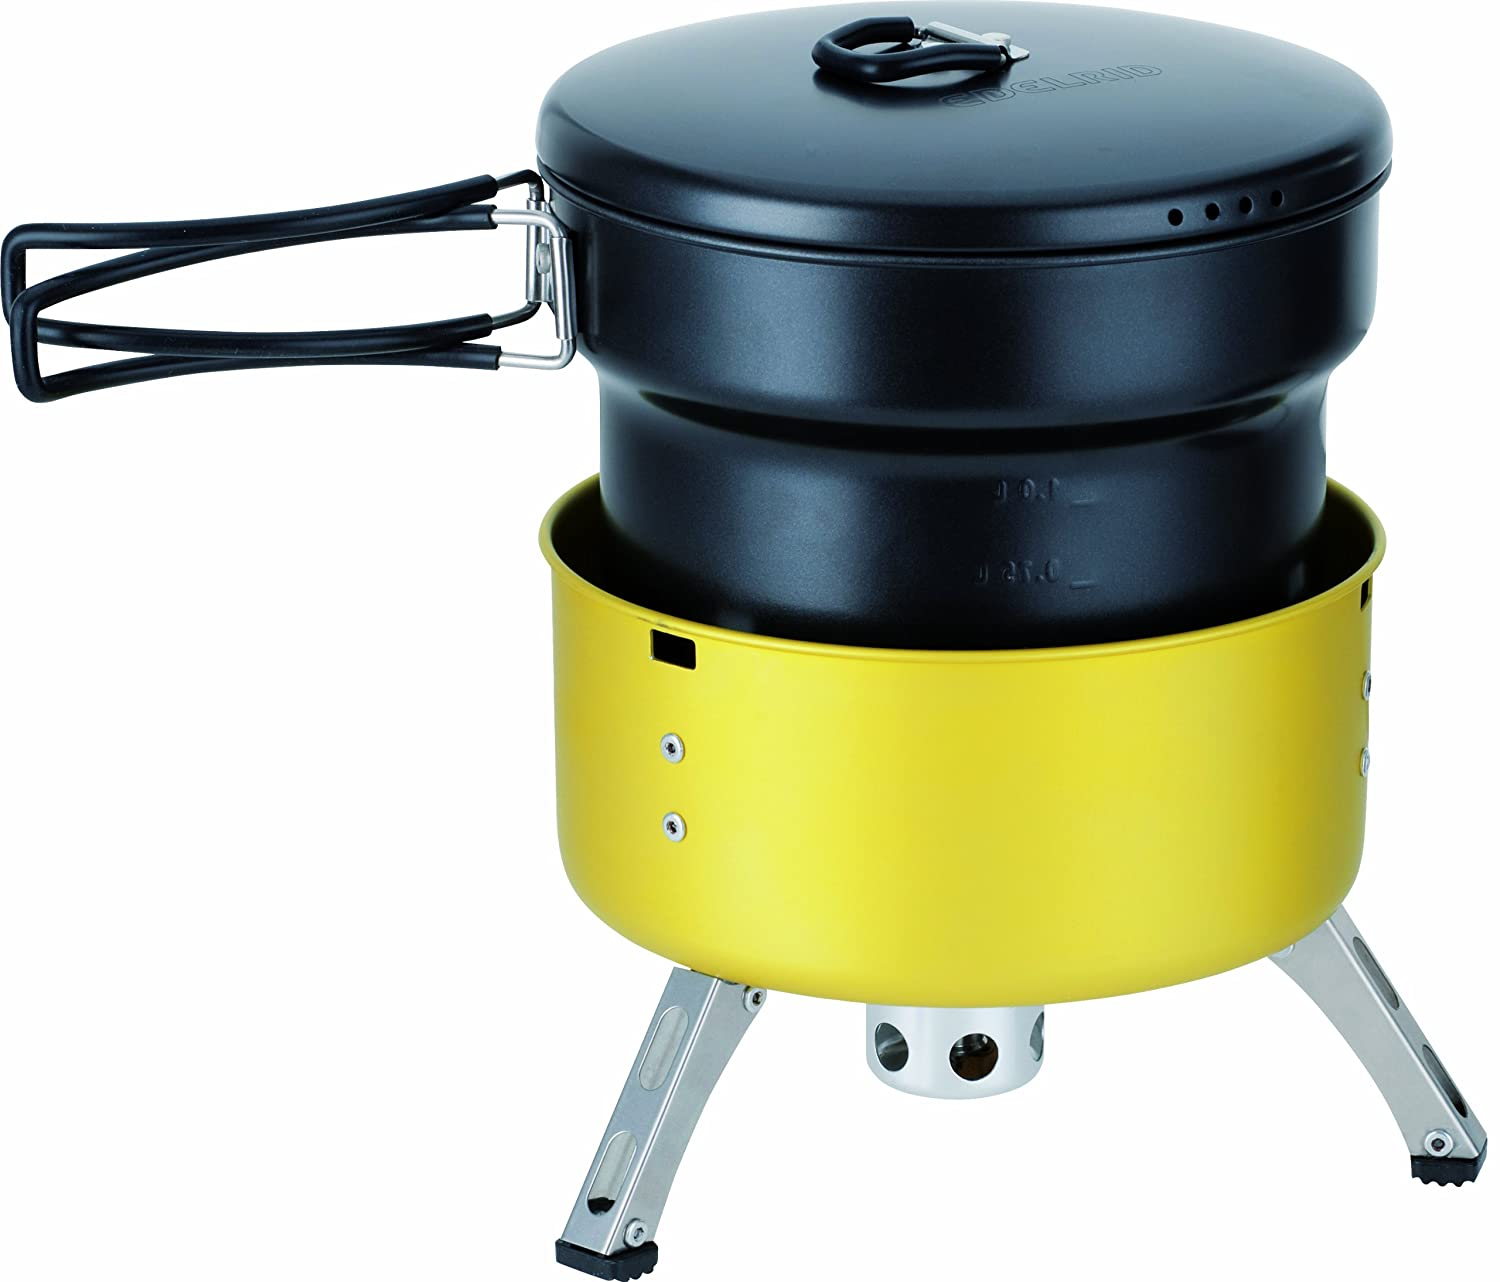 EDELRID Stormy EVO Camping Stove Amazon Sports & Outdoors